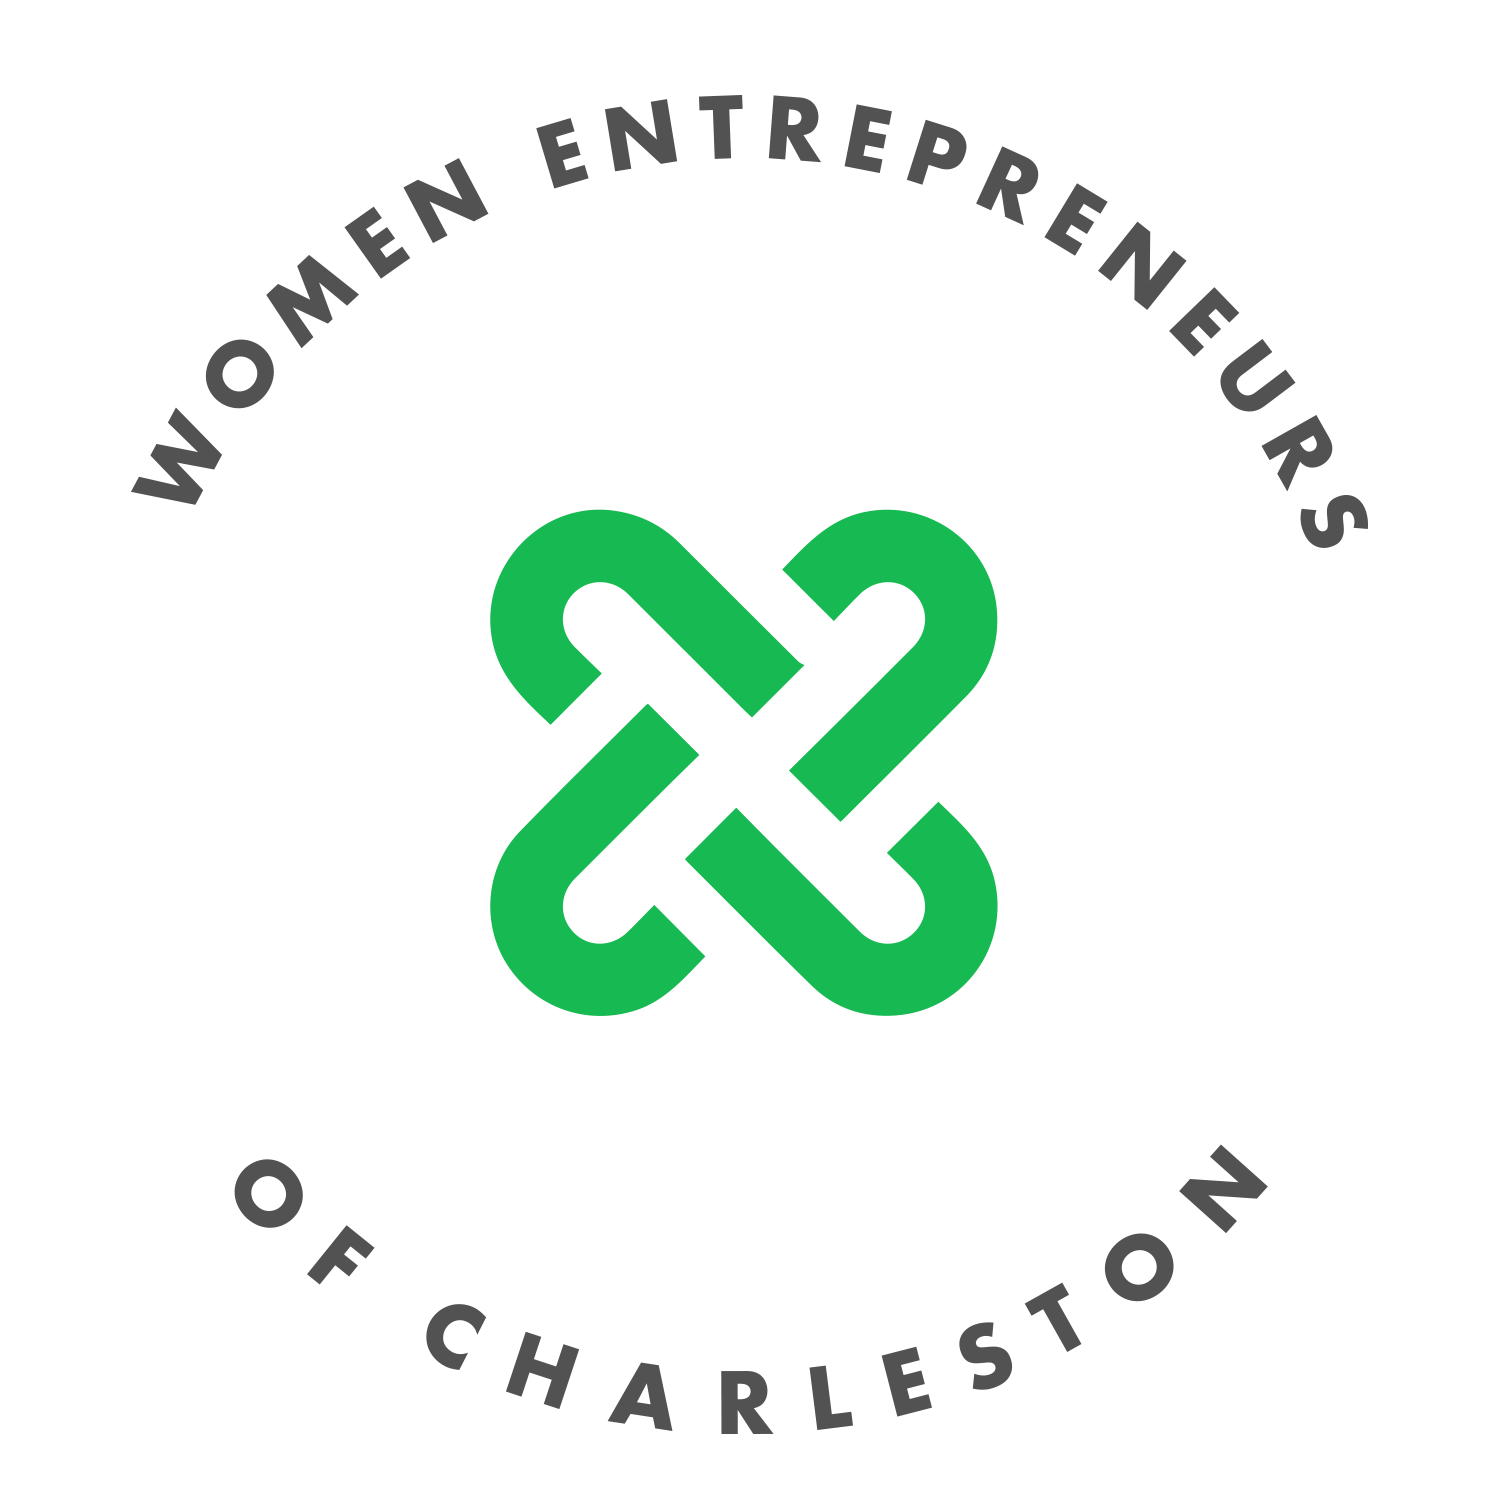 Women Entrepreneurs of Charleston